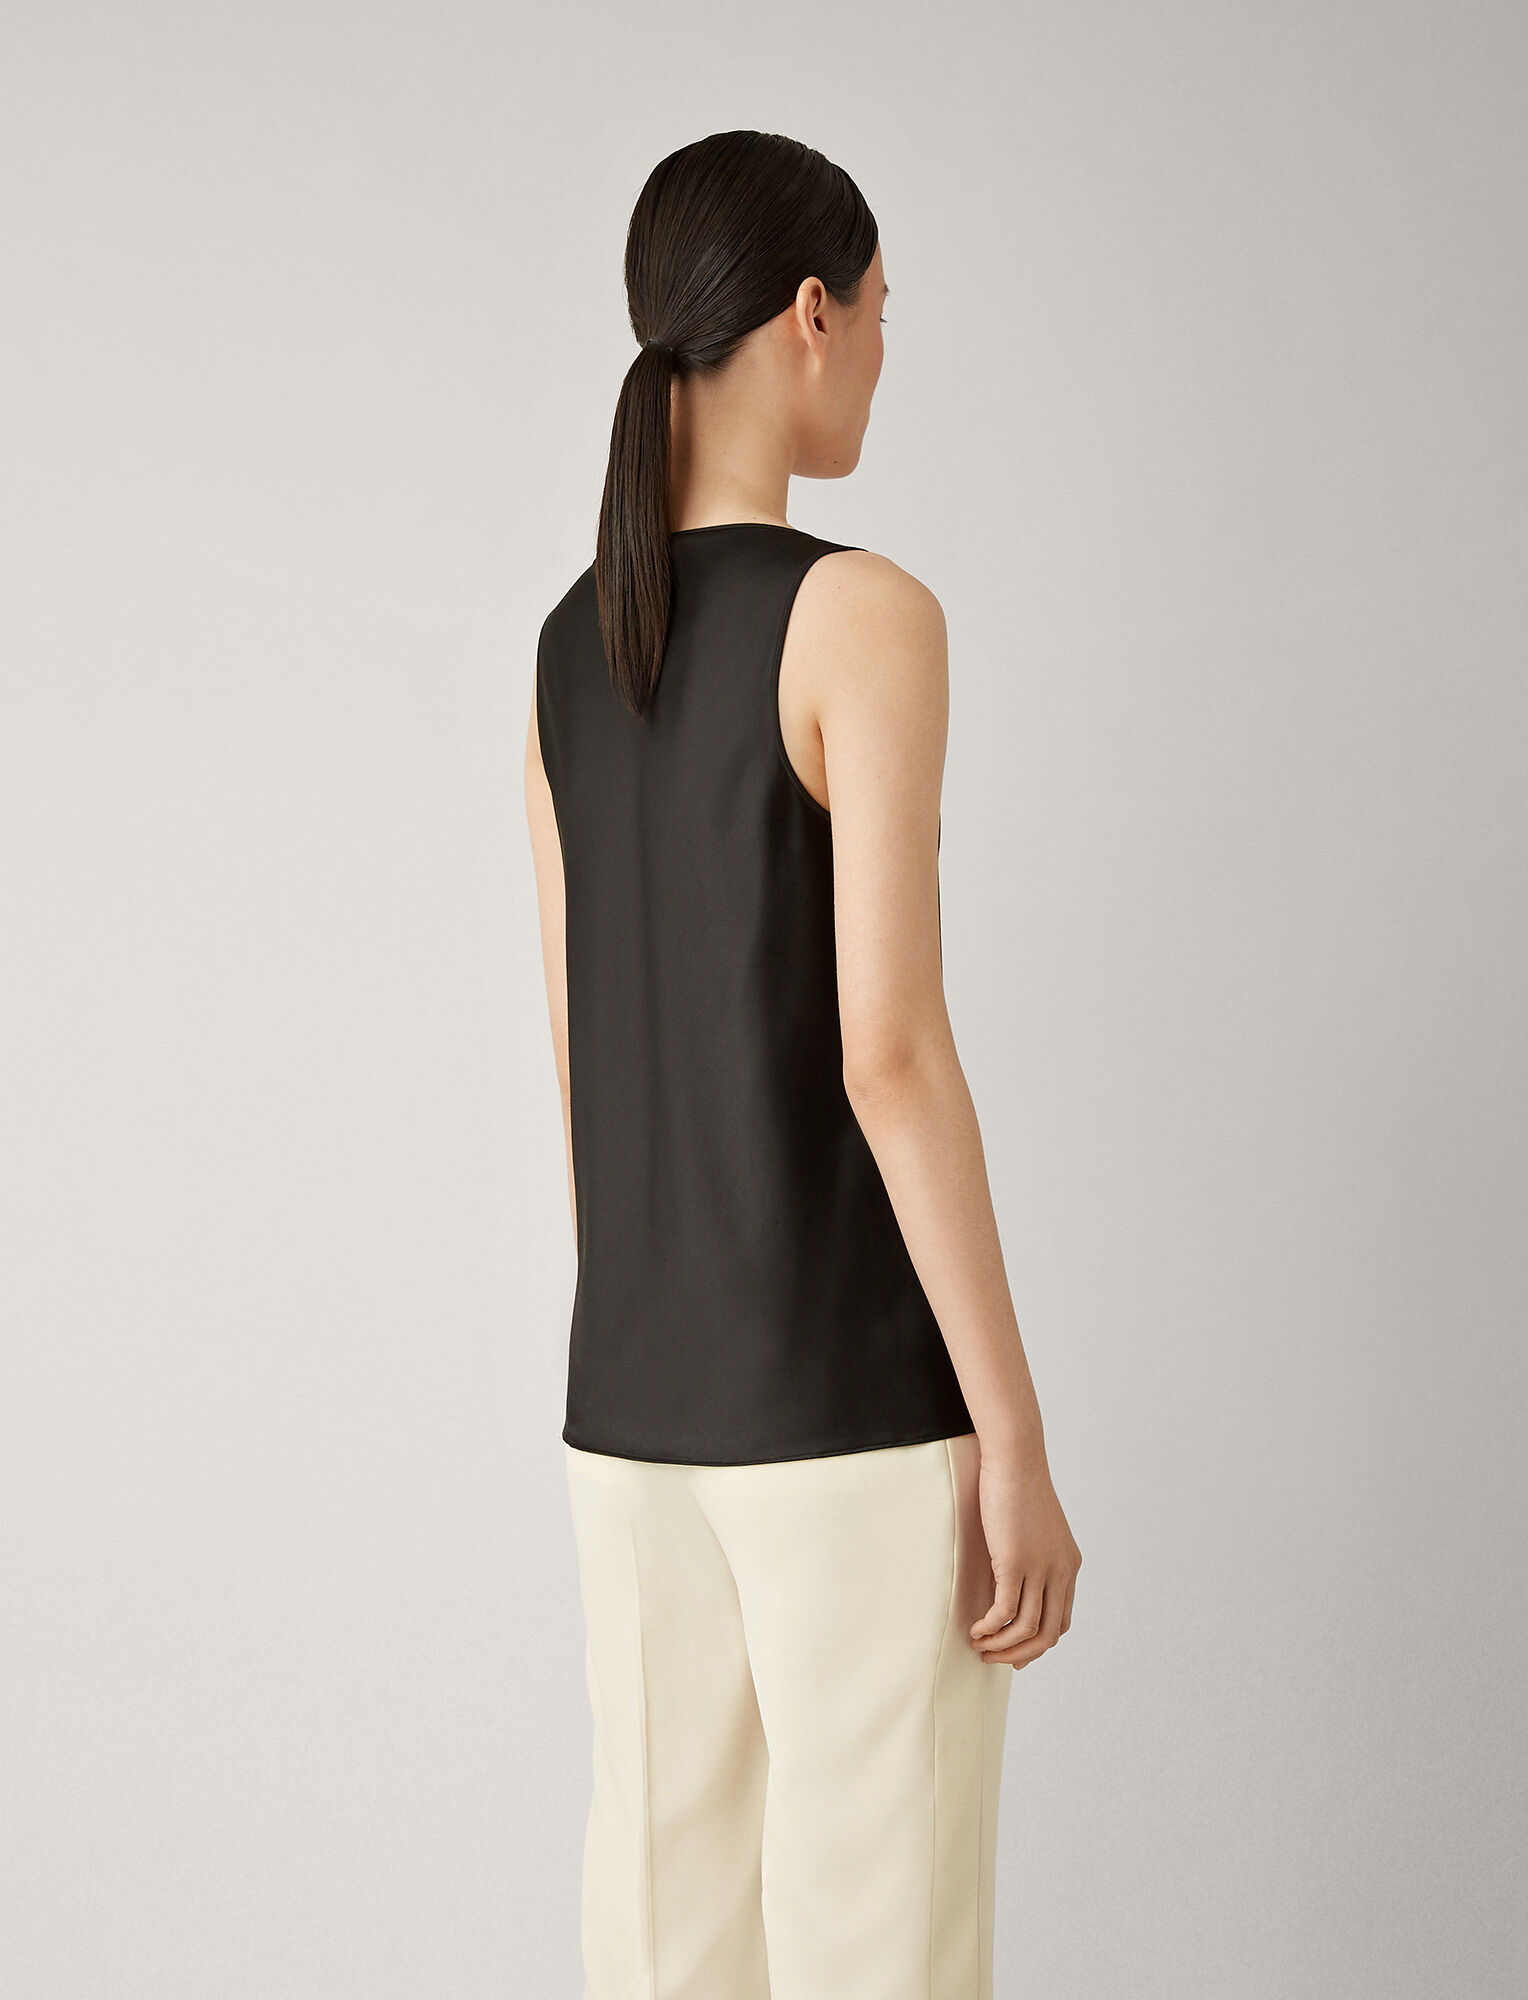 Joseph, Meg Silk Satin Blouse, in BLACK